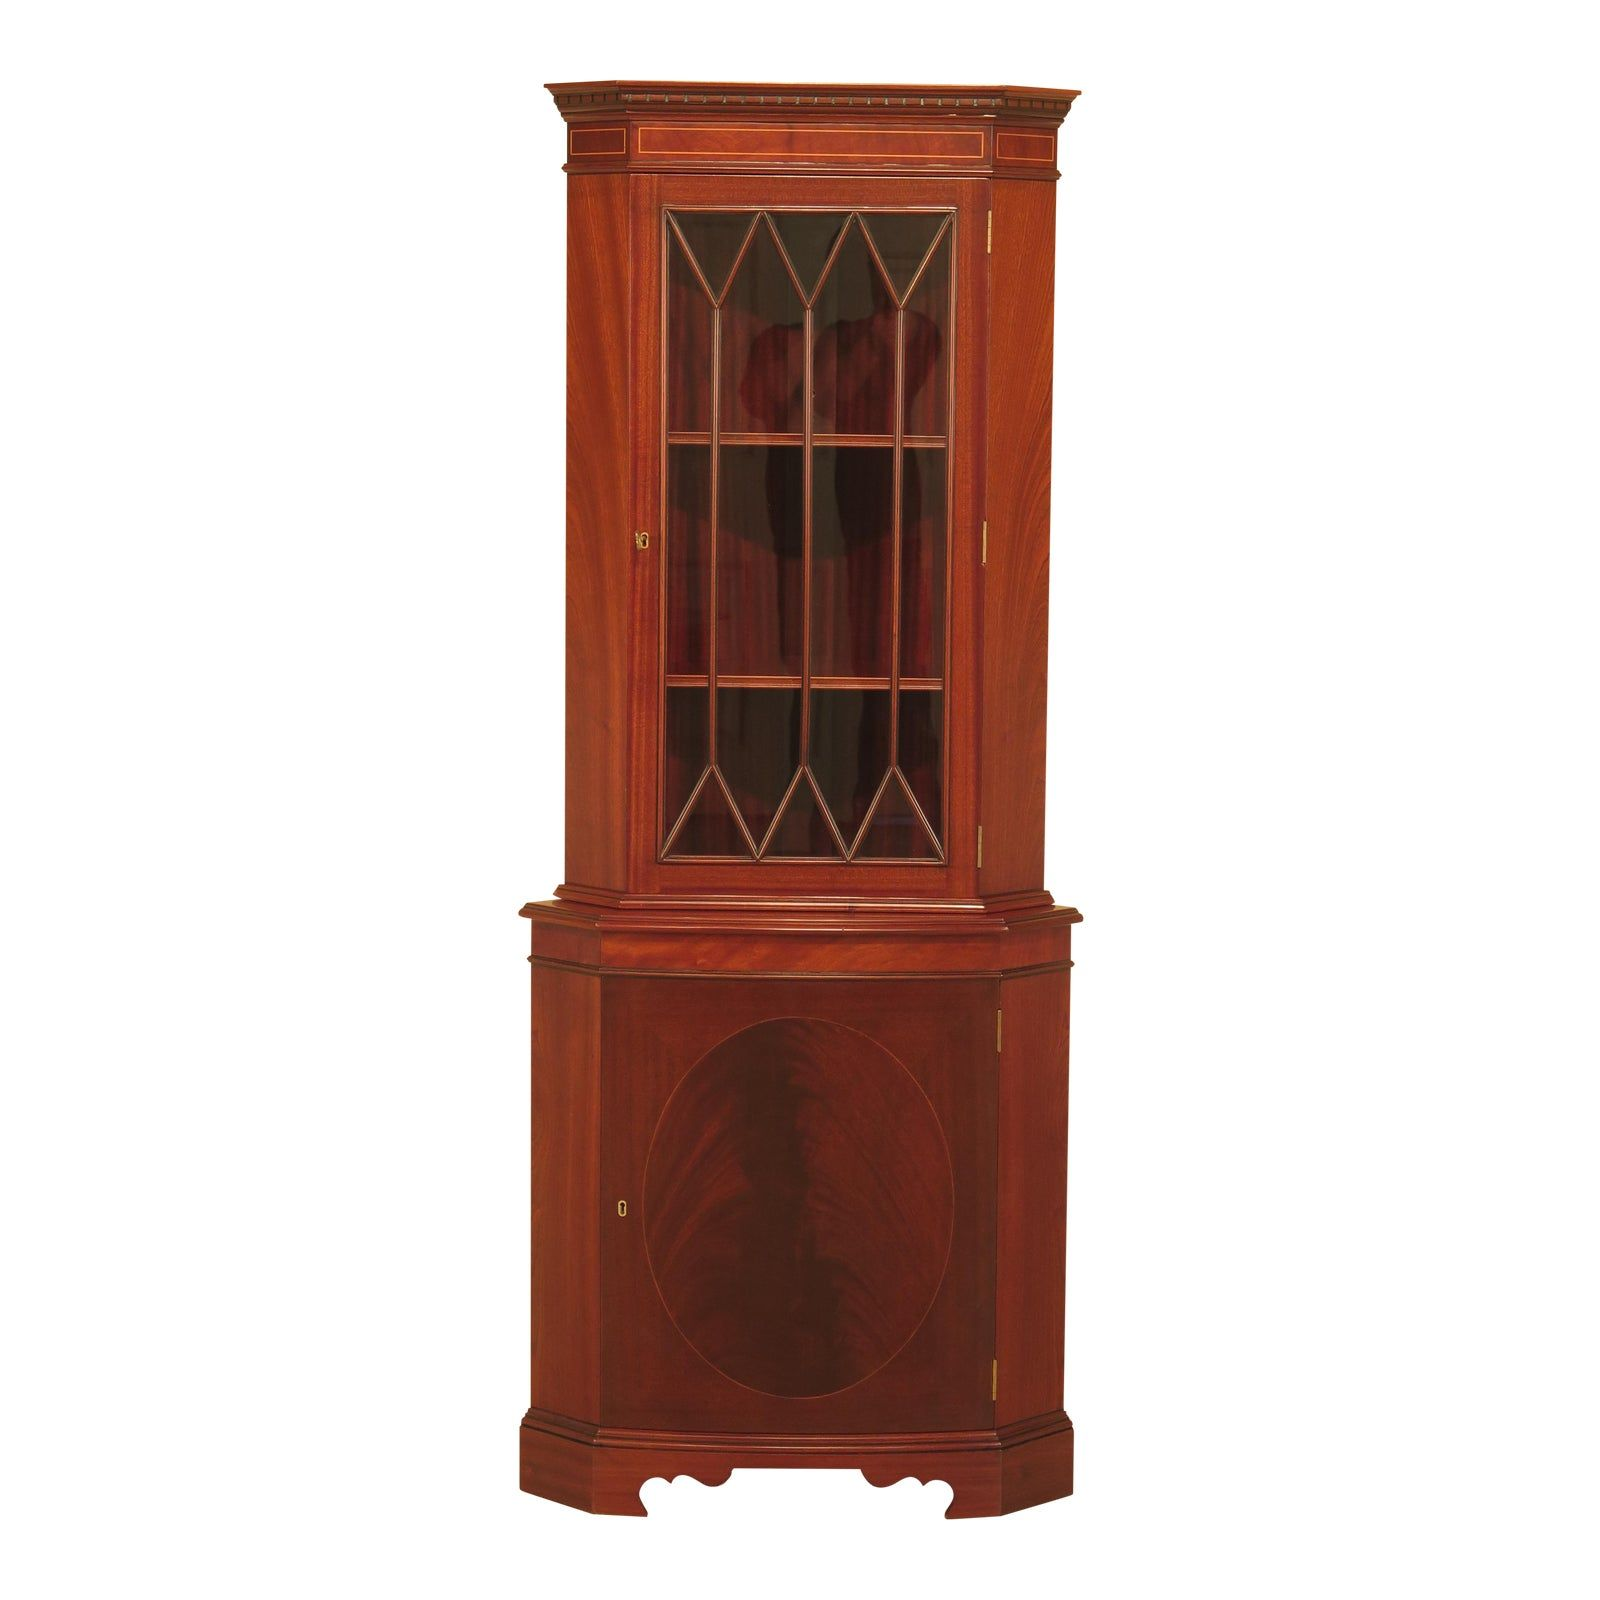 Bevan Funnell English Mahogany Corner For Sale